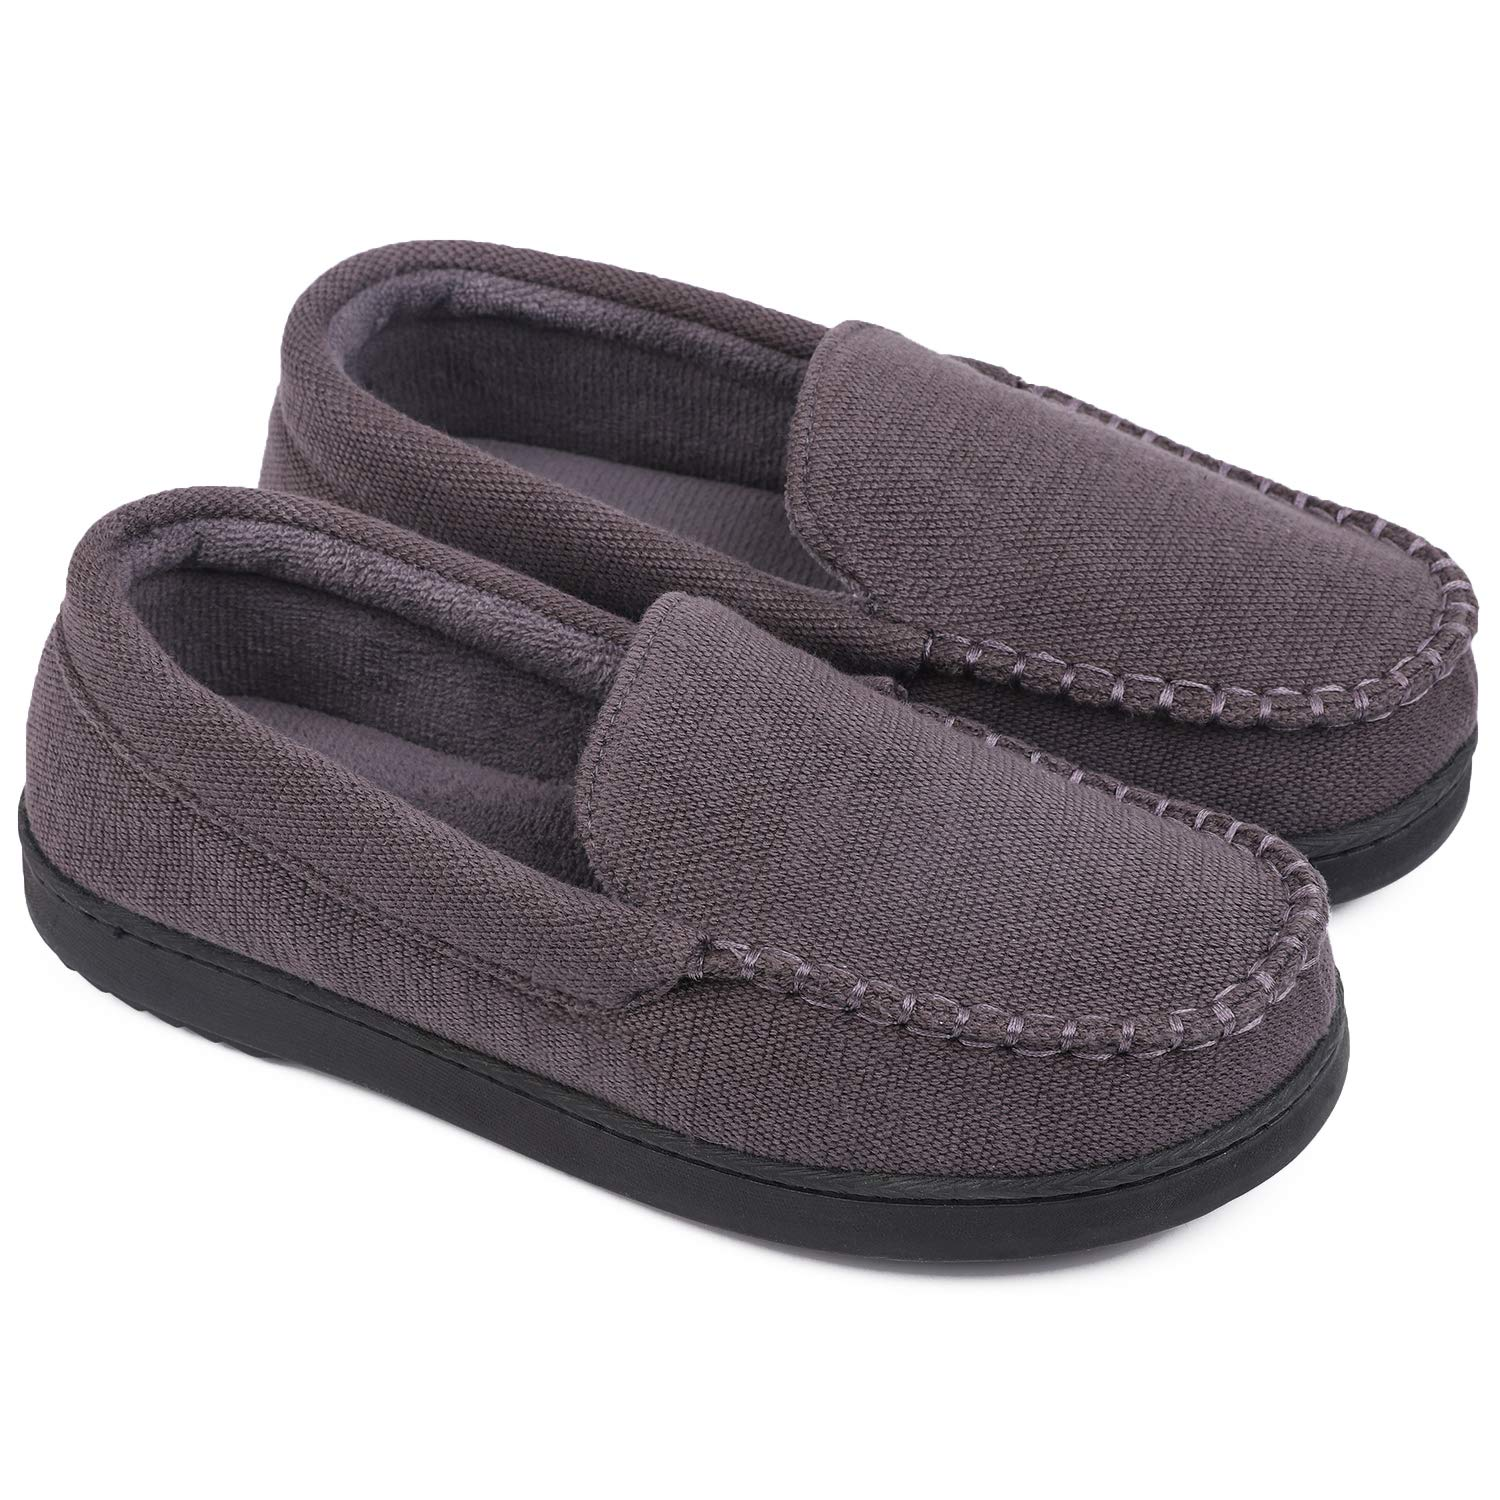 Womens Moccasin Slippers Anti-Slip House Shoes Indoor Outdoor Rubber Sole Loafers